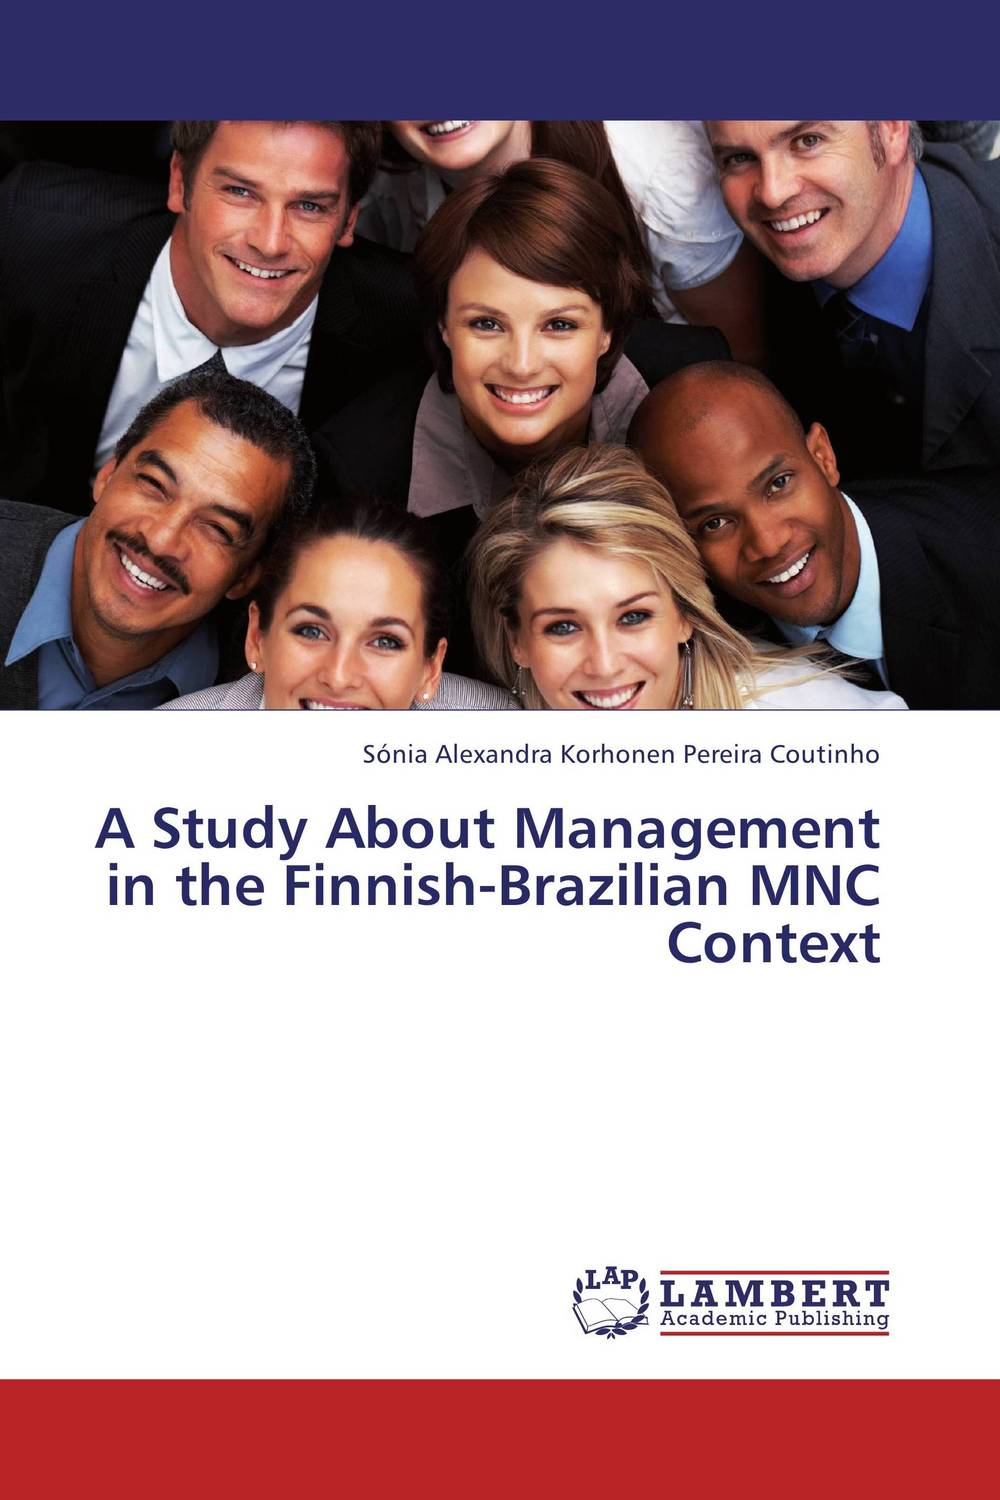 A Study About Management in the Finnish-Brazilian MNC Context knowledge management – classic